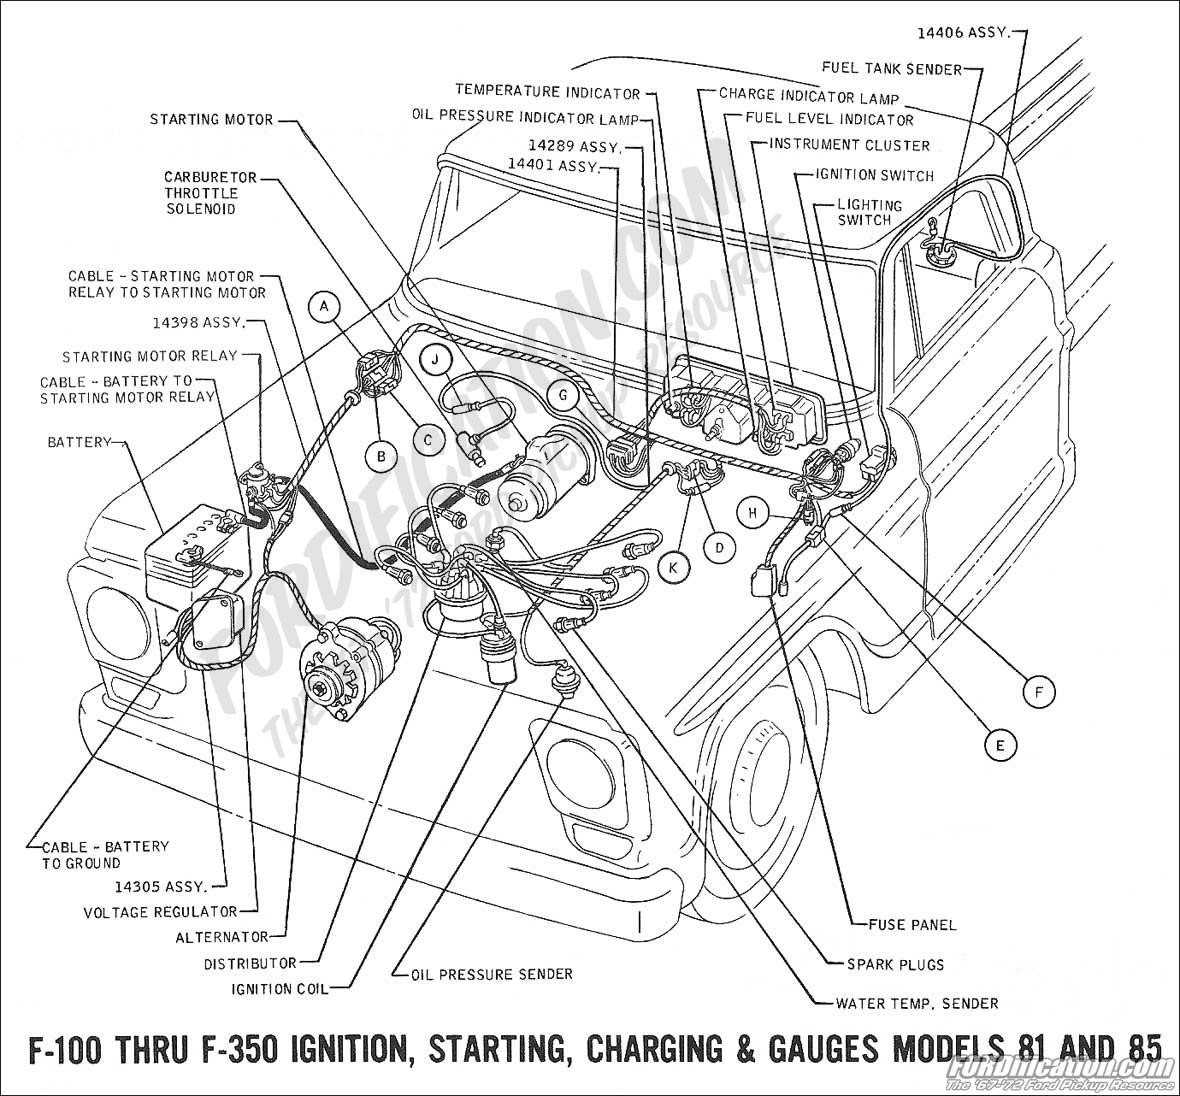 ford truck technical drawings and schematics section h wiring rh fordification com 2001 Ford F350 Wiring Diagrams 2001 Ford F350 Wiring Diagrams